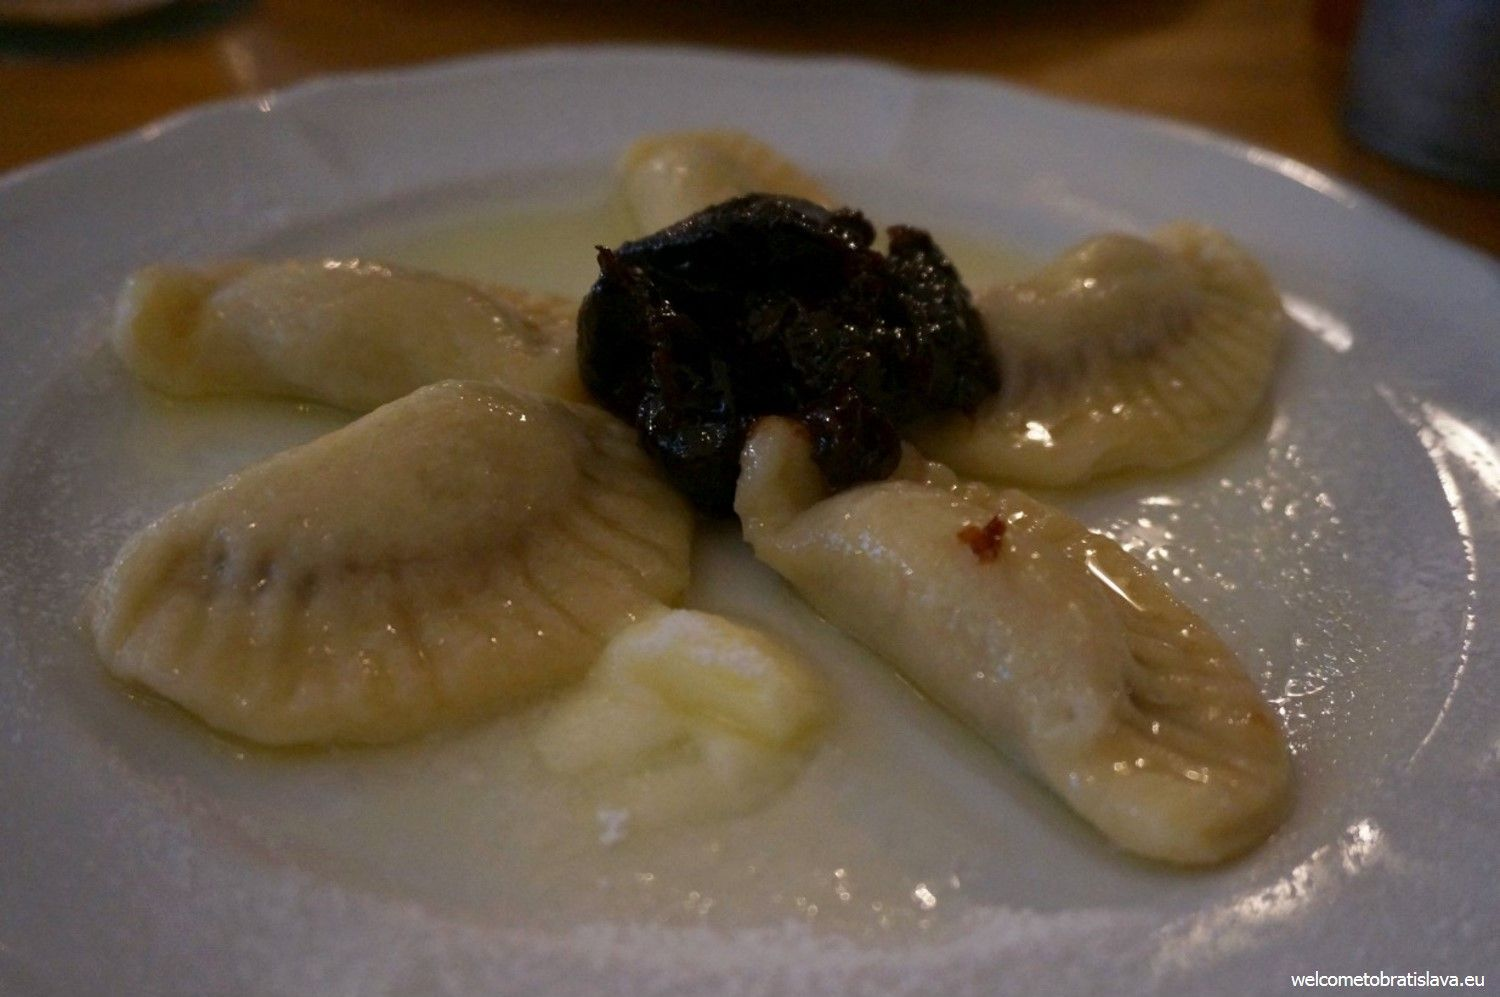 Dumplings filled with chestnut puree